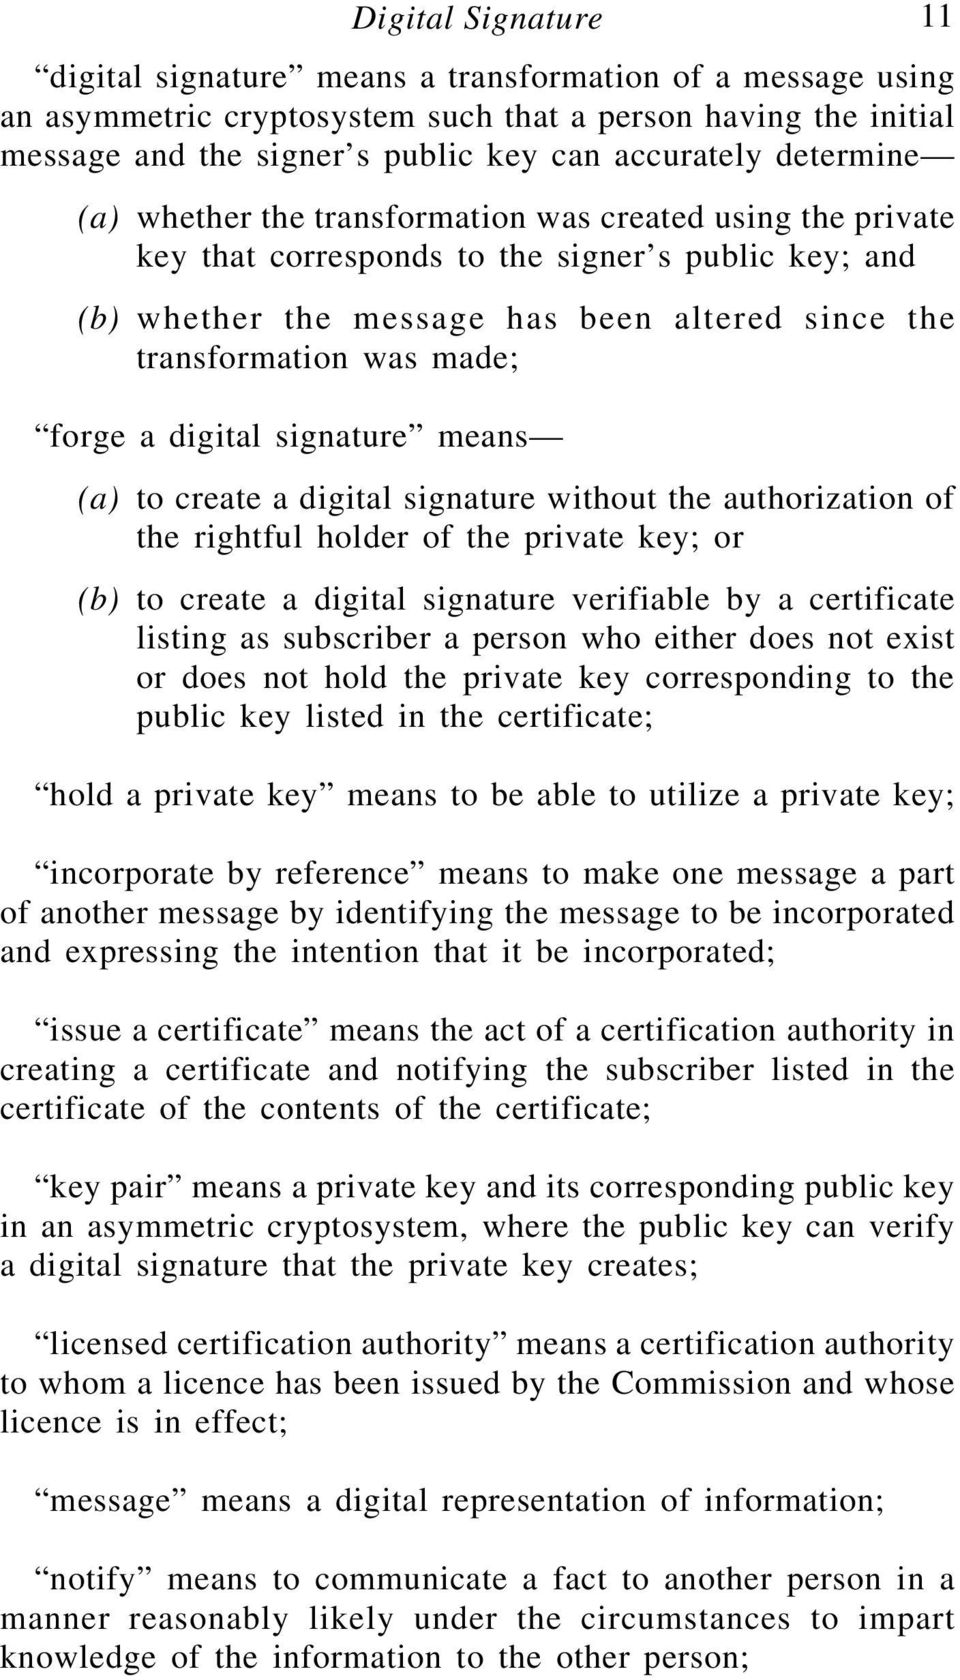 forge a digital signature means (a) to create a digital signature without the authorization of the rightful holder of the private key; or (b) to create a digital signature verifiable by a certificate